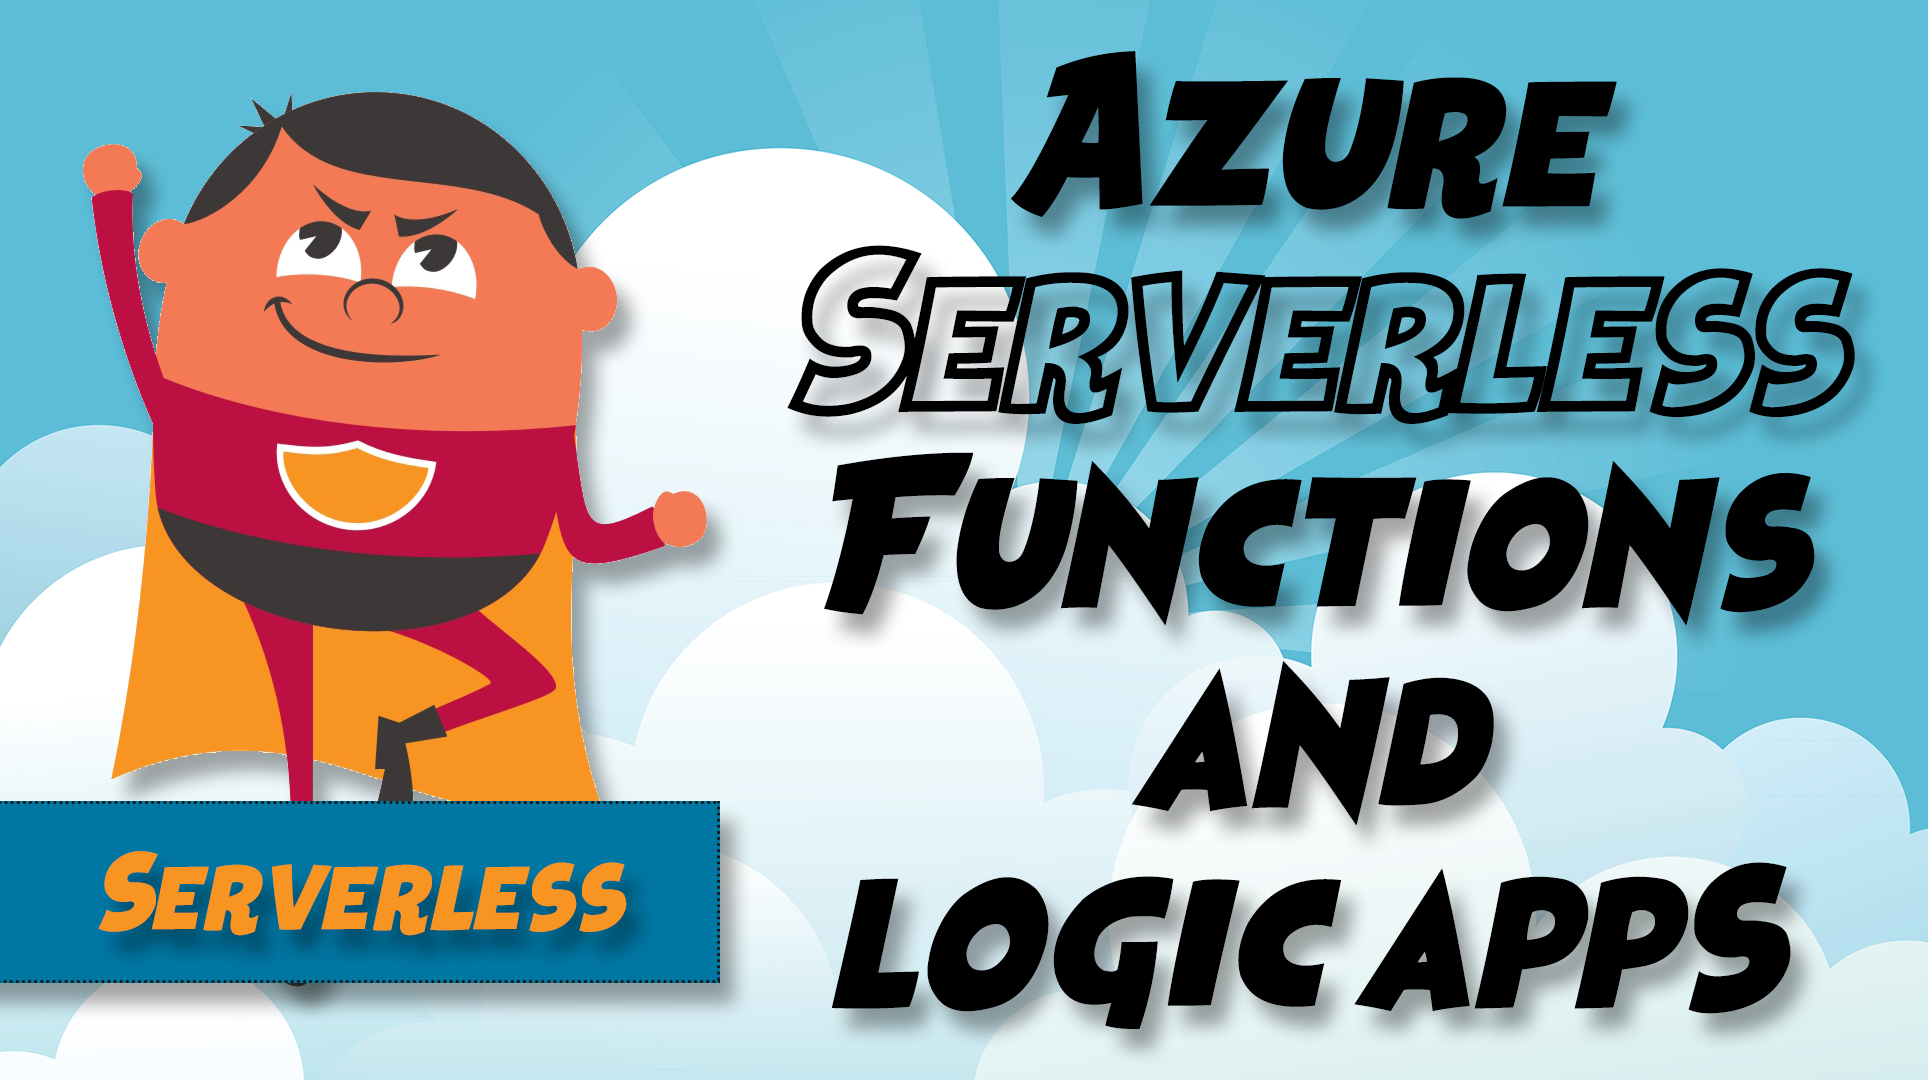 Azure Serverless: Functions and Logic Apps